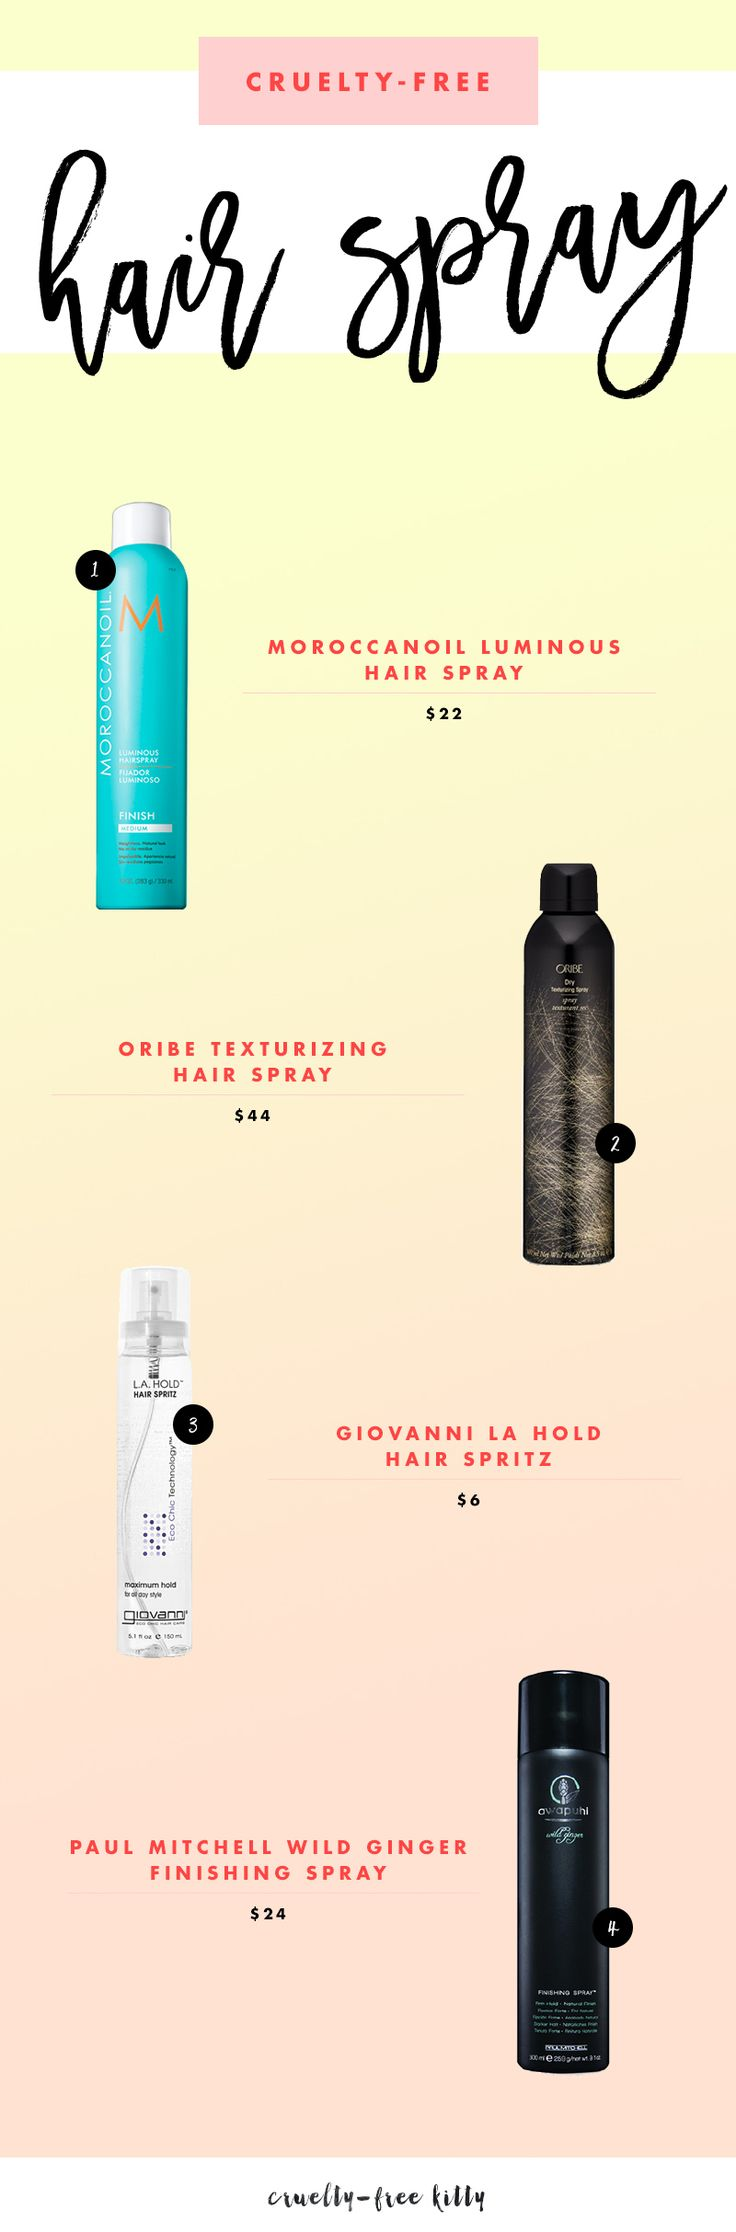 Some great cruelty-free hairspray options! #crueltyfree